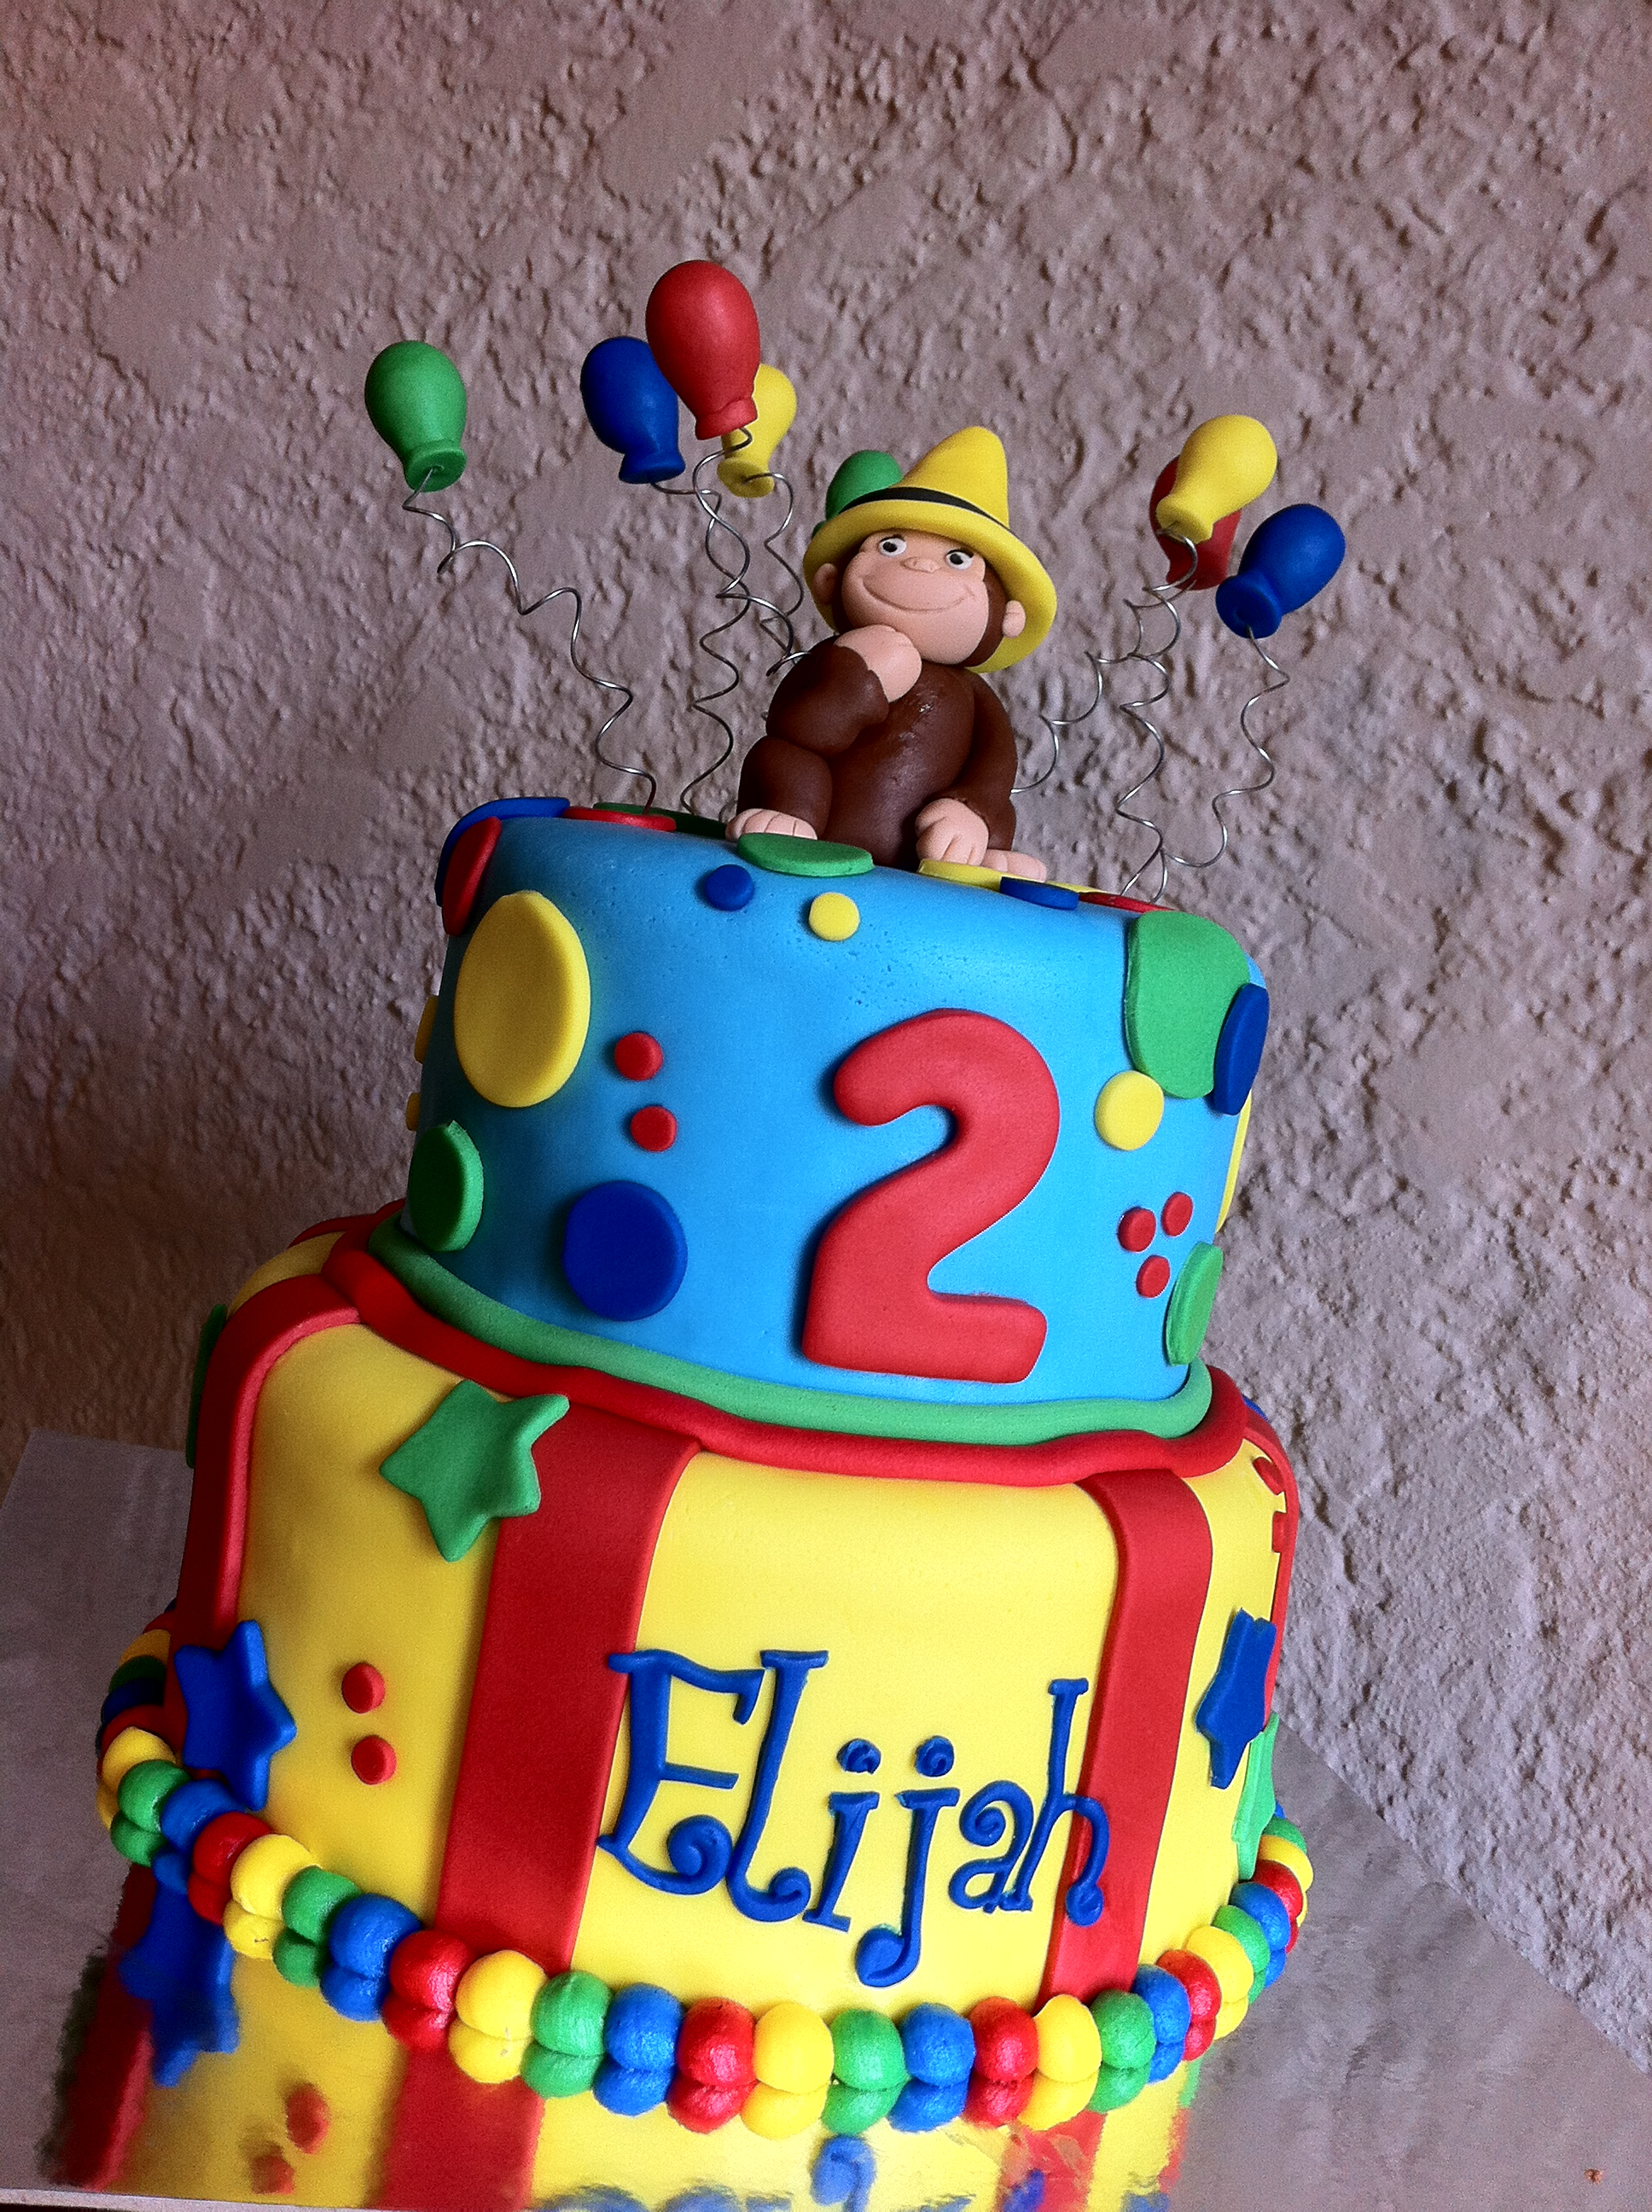 Curious George Birthday Cakes Curious George Birthday Cake With Balloons And The Yellow Hat